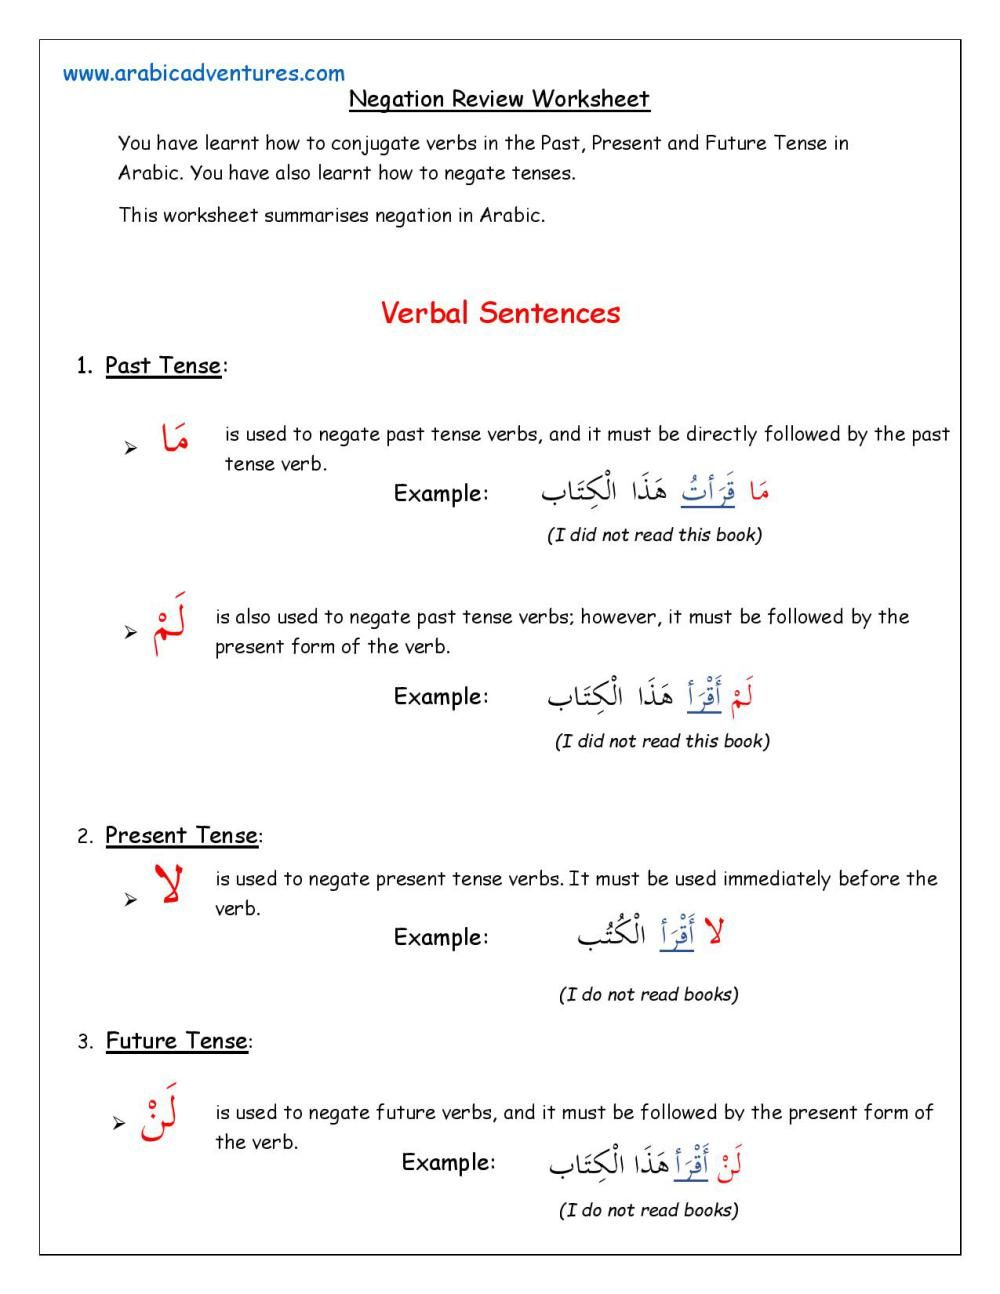 Negation Review Worksheet-page-001 | Arabic verbs, Learn